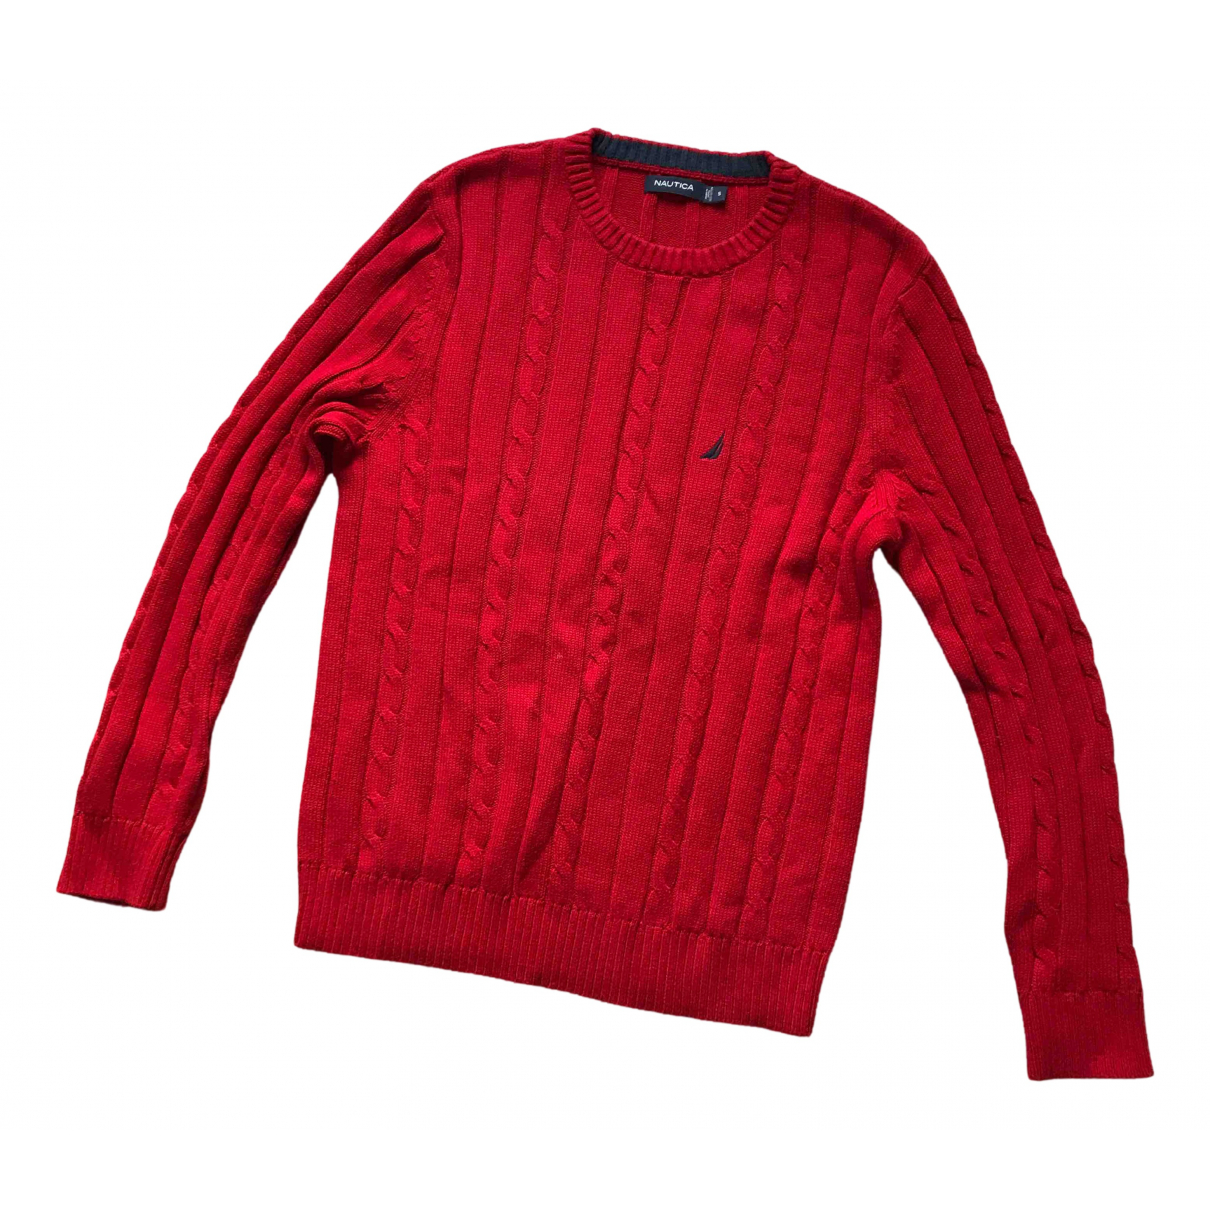 Non Signé / Unsigned N Red Cotton Knitwear & Sweatshirts for Men S International